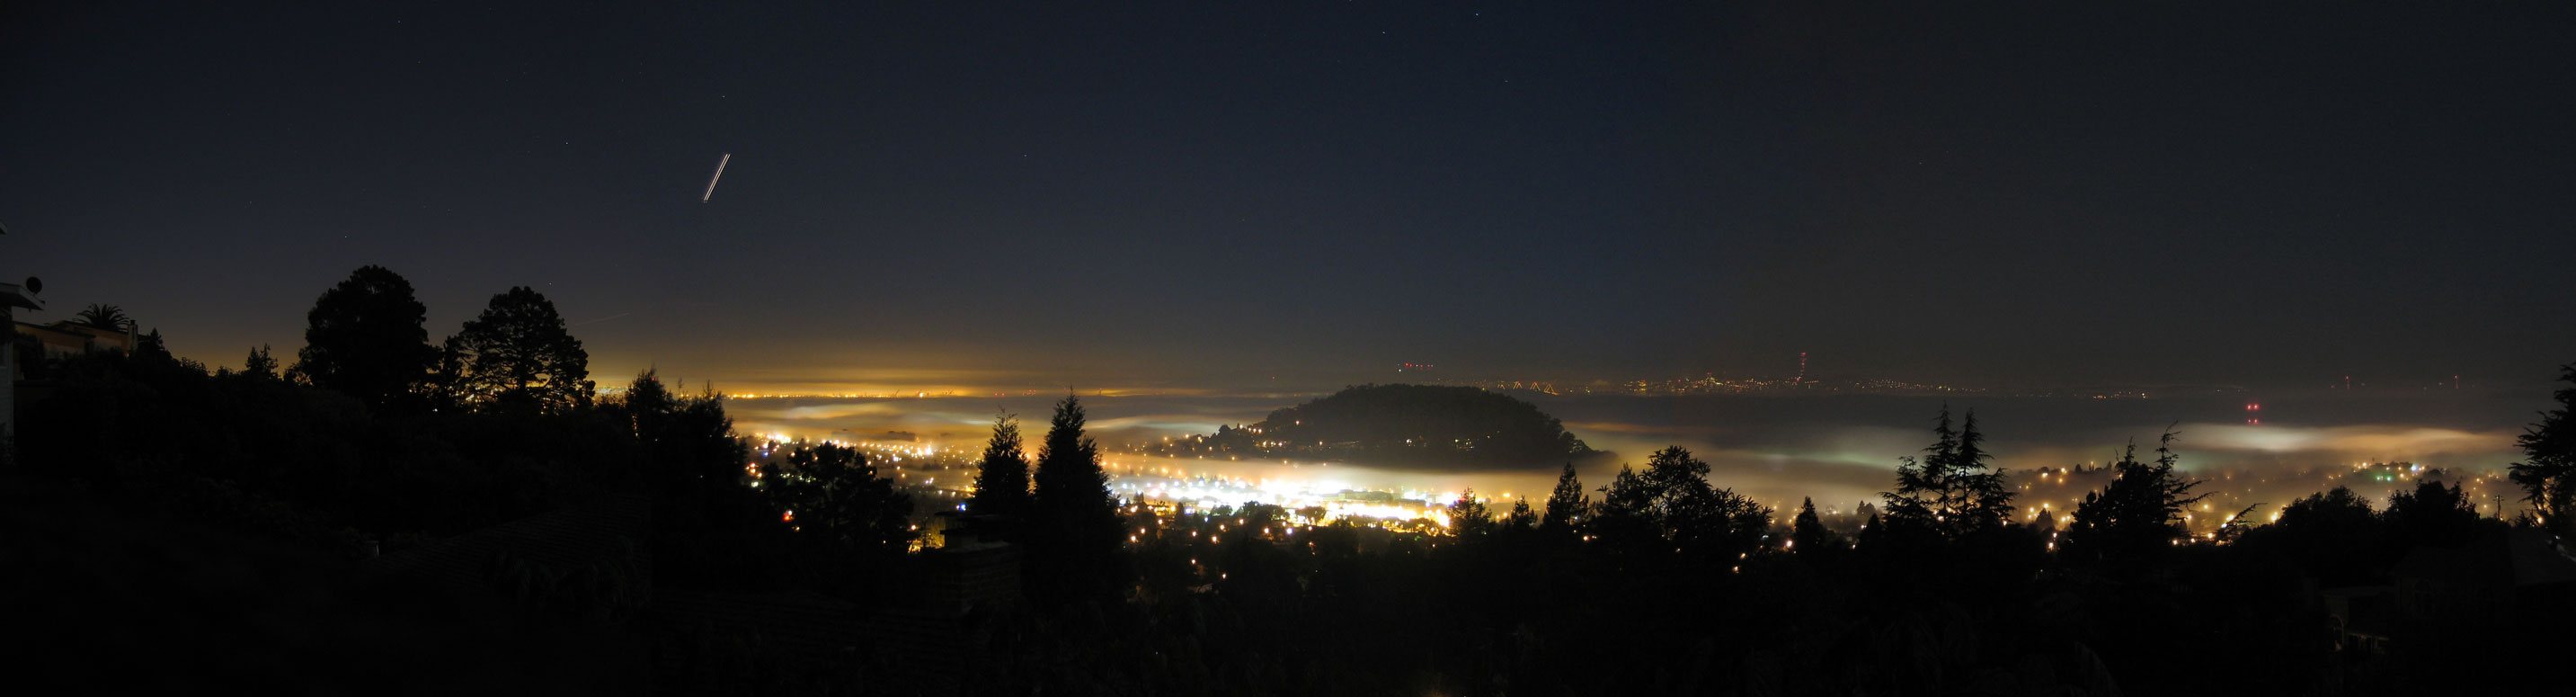 El Cerrito Skyline at night